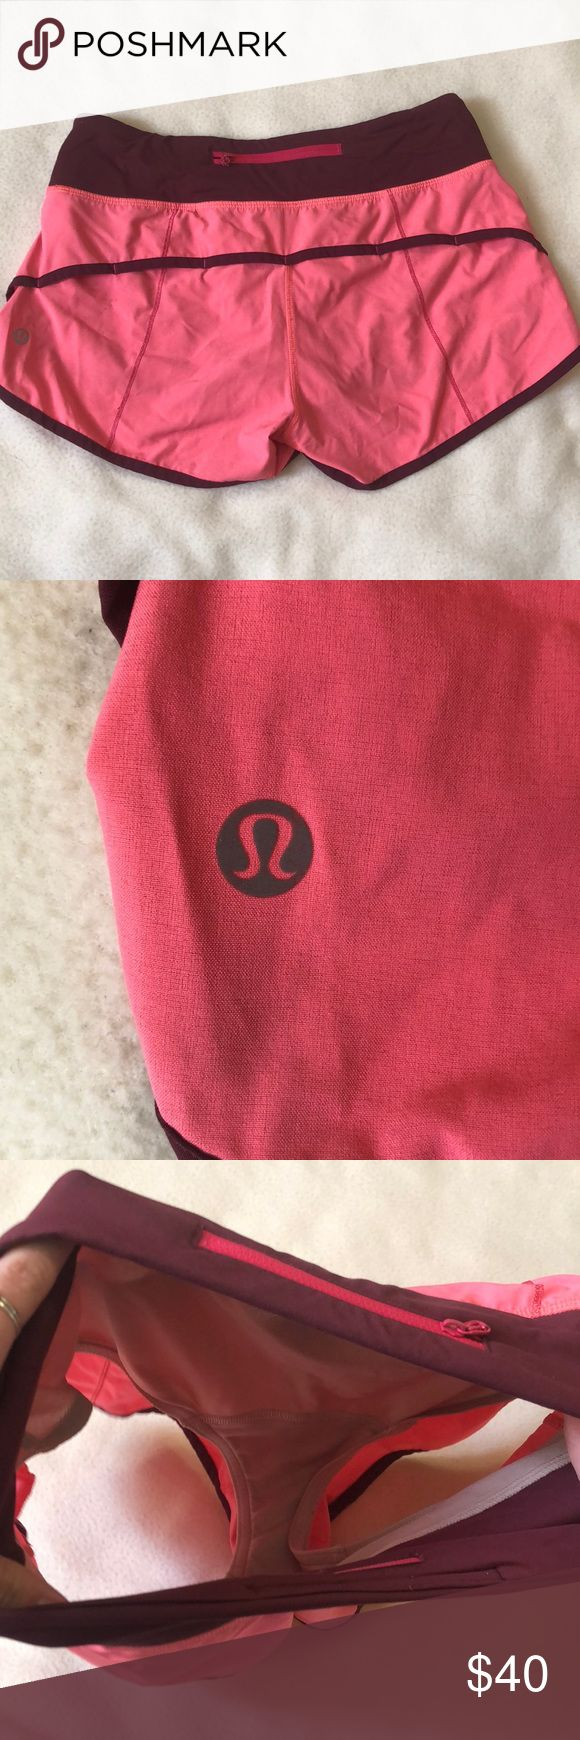 Lululemon Athletica shorts Lululemon athletics shorts lululemon athletica Shorts